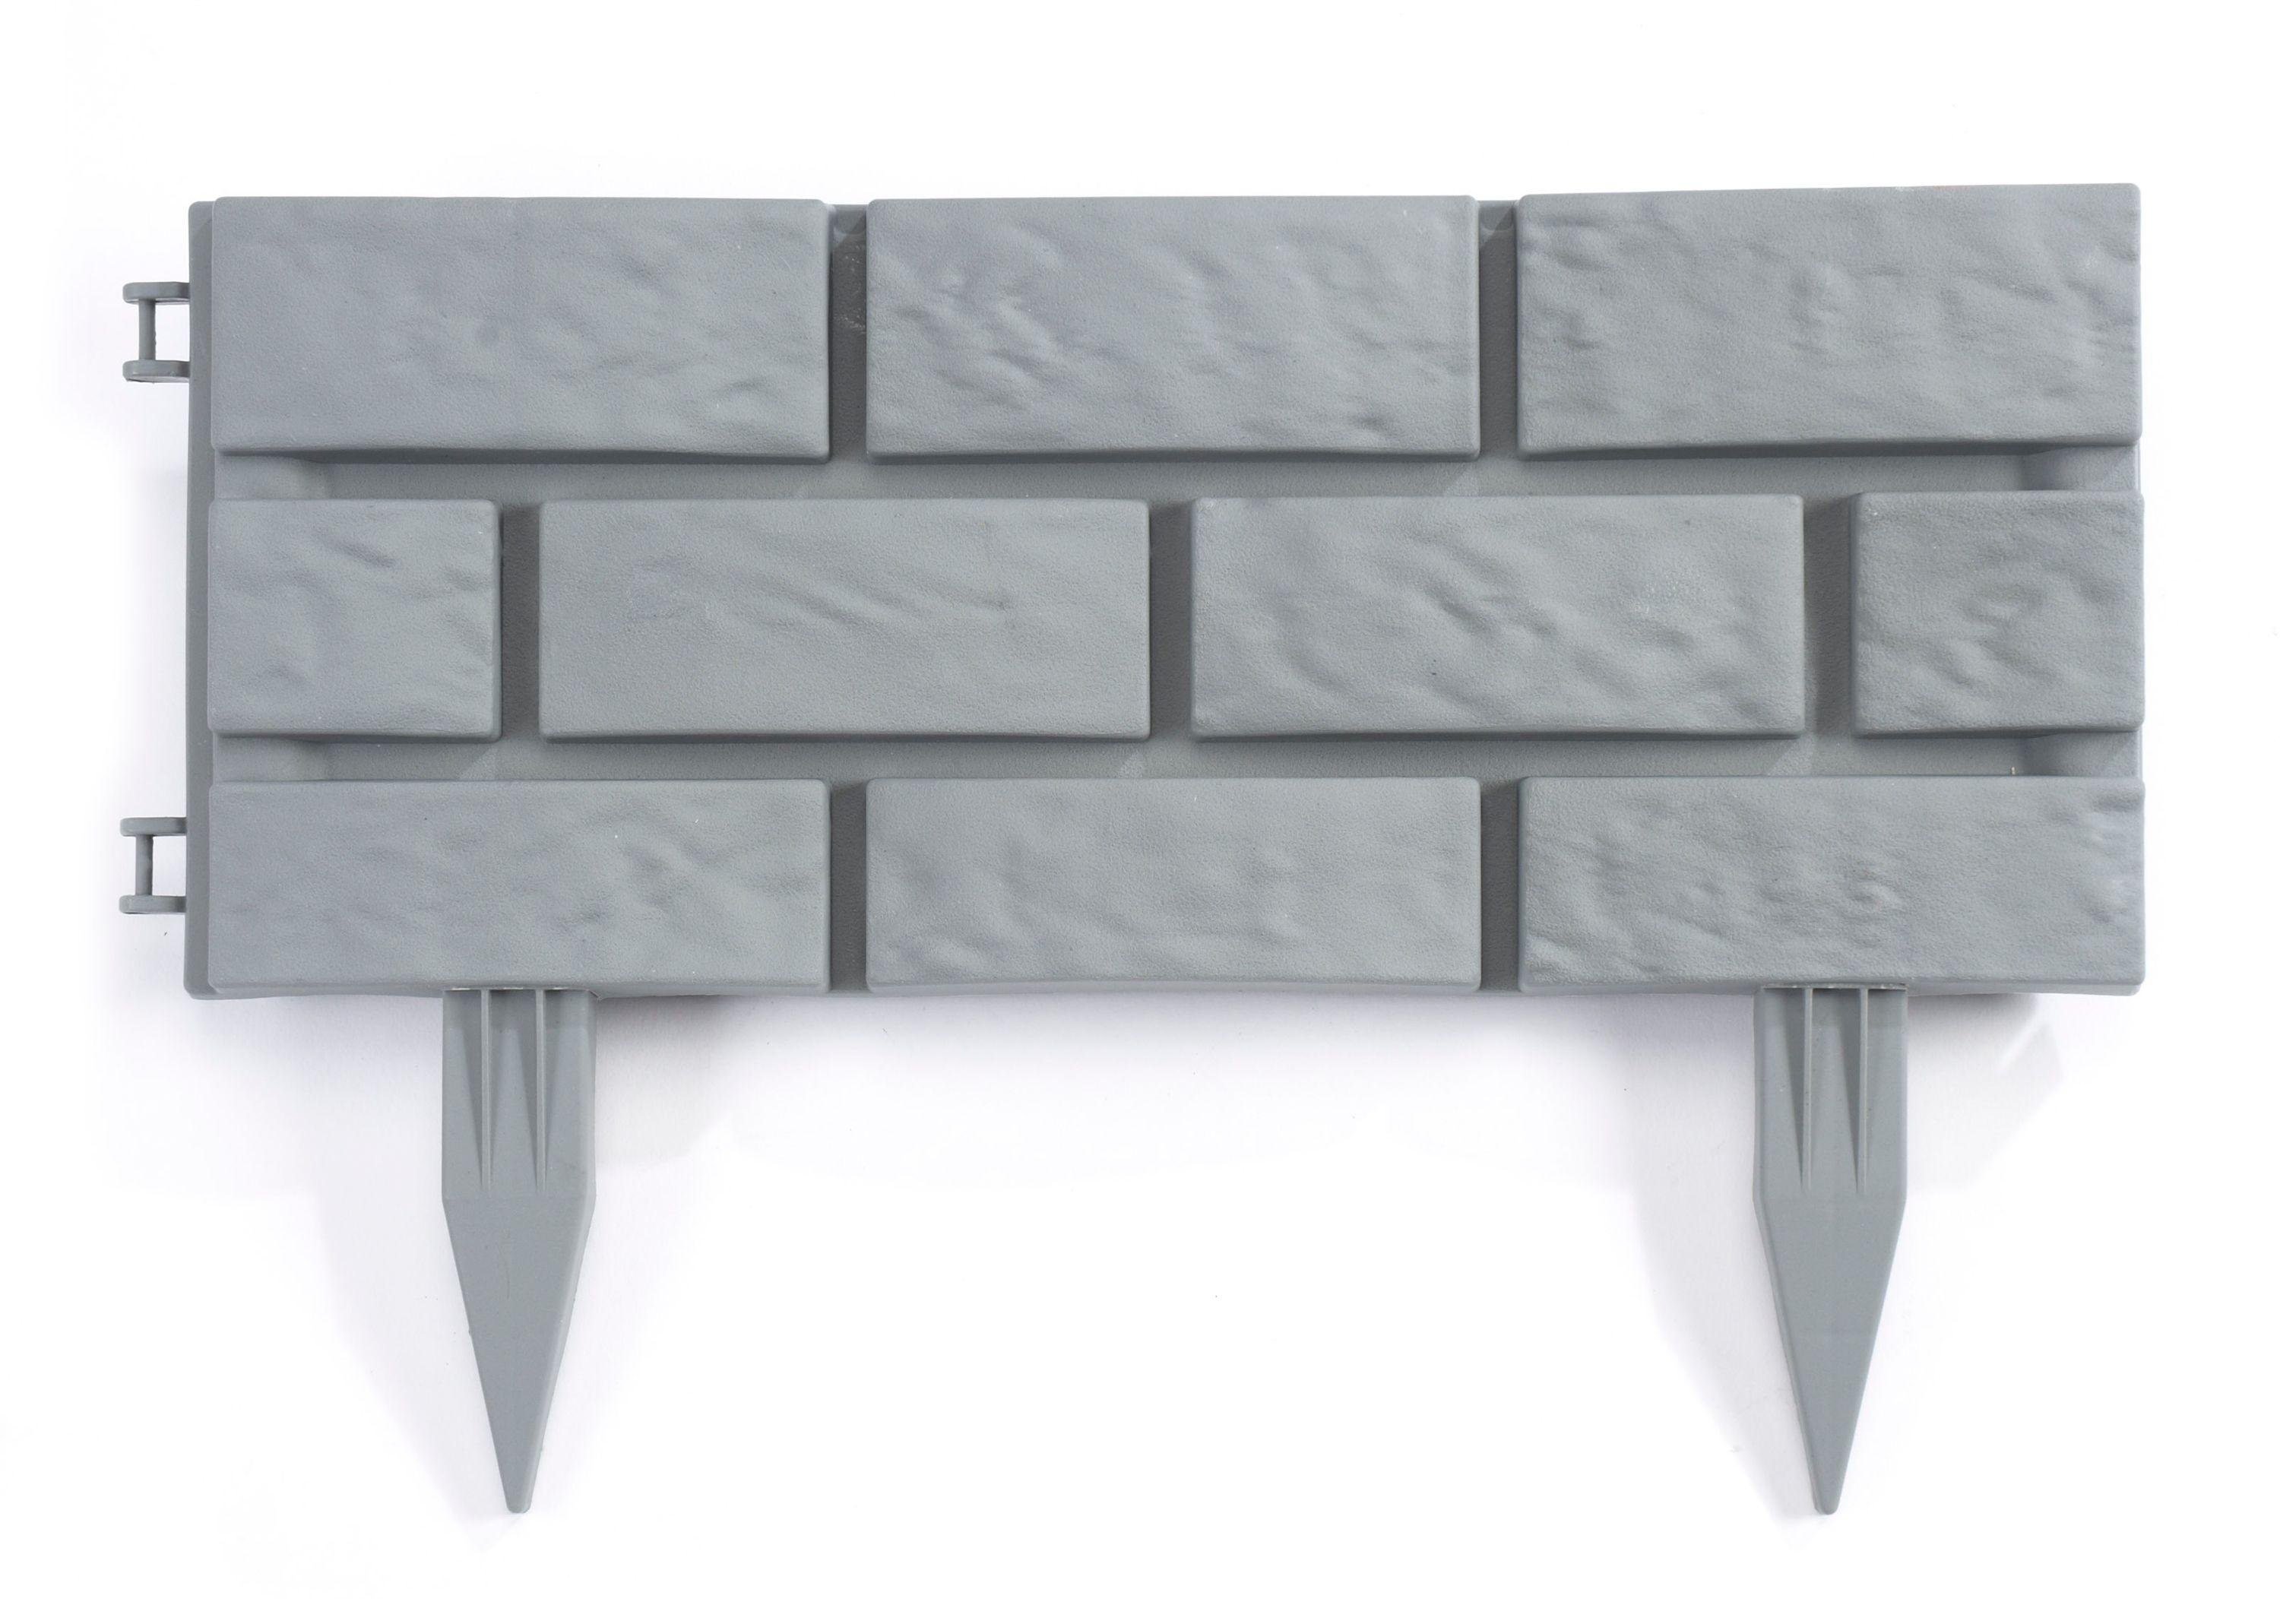 Brick Effect Grey Plastic Edging Panels - 4 Pack. lowest price